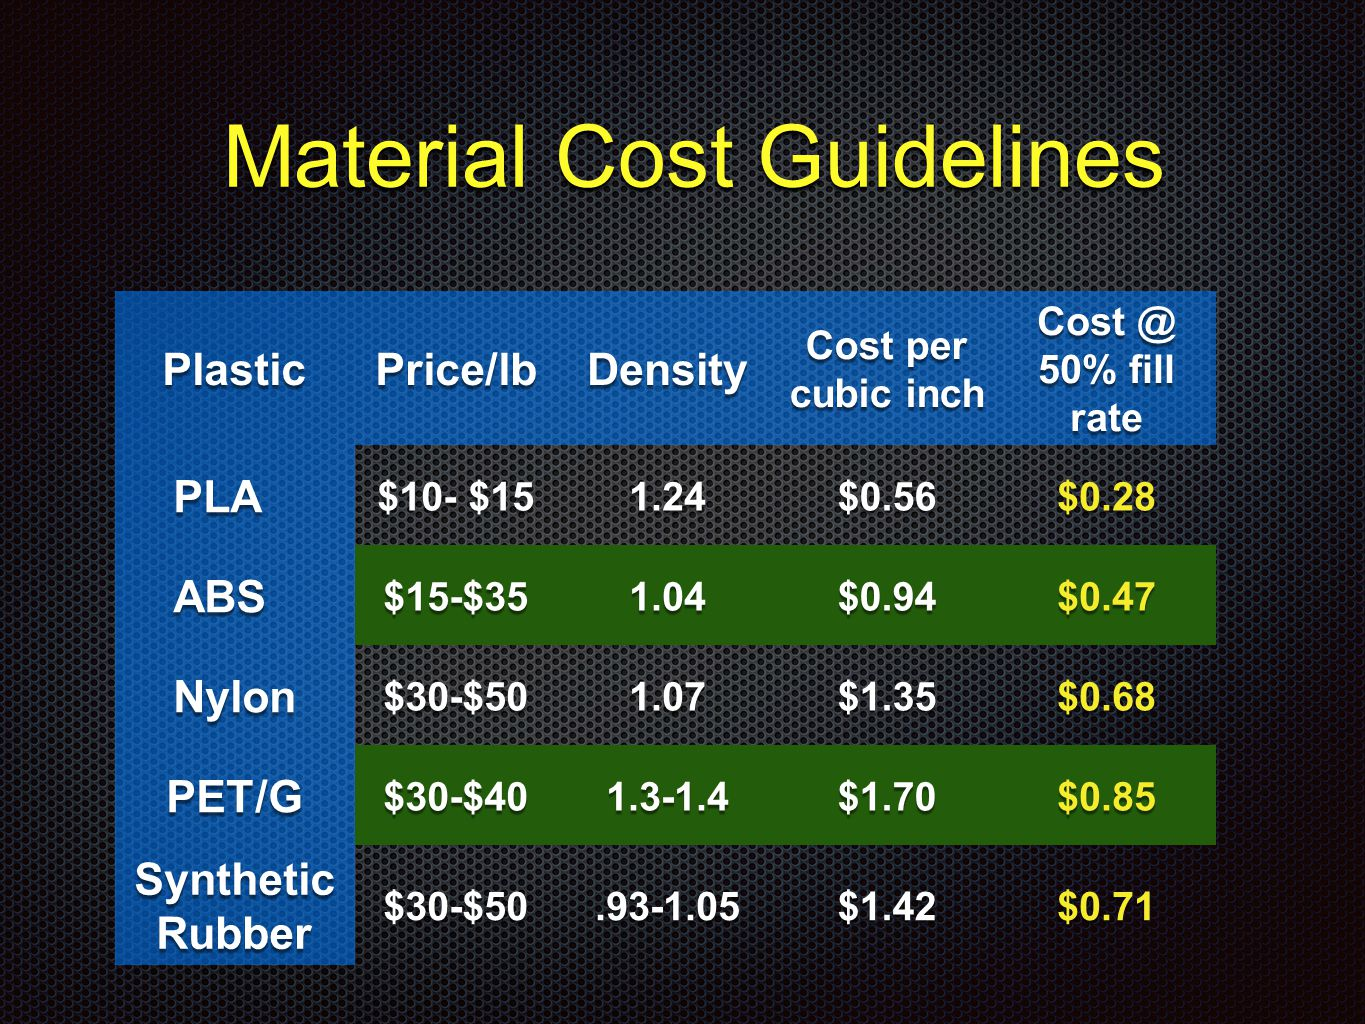 Material Cost Guidelines Material Cost Guidelines PlasticPrice/lbDensity Cost per cubic inch Cost @ 50% fill rate PLA $10- $15 1.24$0.56$0.28 ABS$15-$351.04$0.94$0.47 Nylon$30-$501.07$1.35$0.68 PET/G$30-$401.3-1.4$1.70$0.85 Synthetic Rubber $30-$50.93-1.05$1.42$0.71